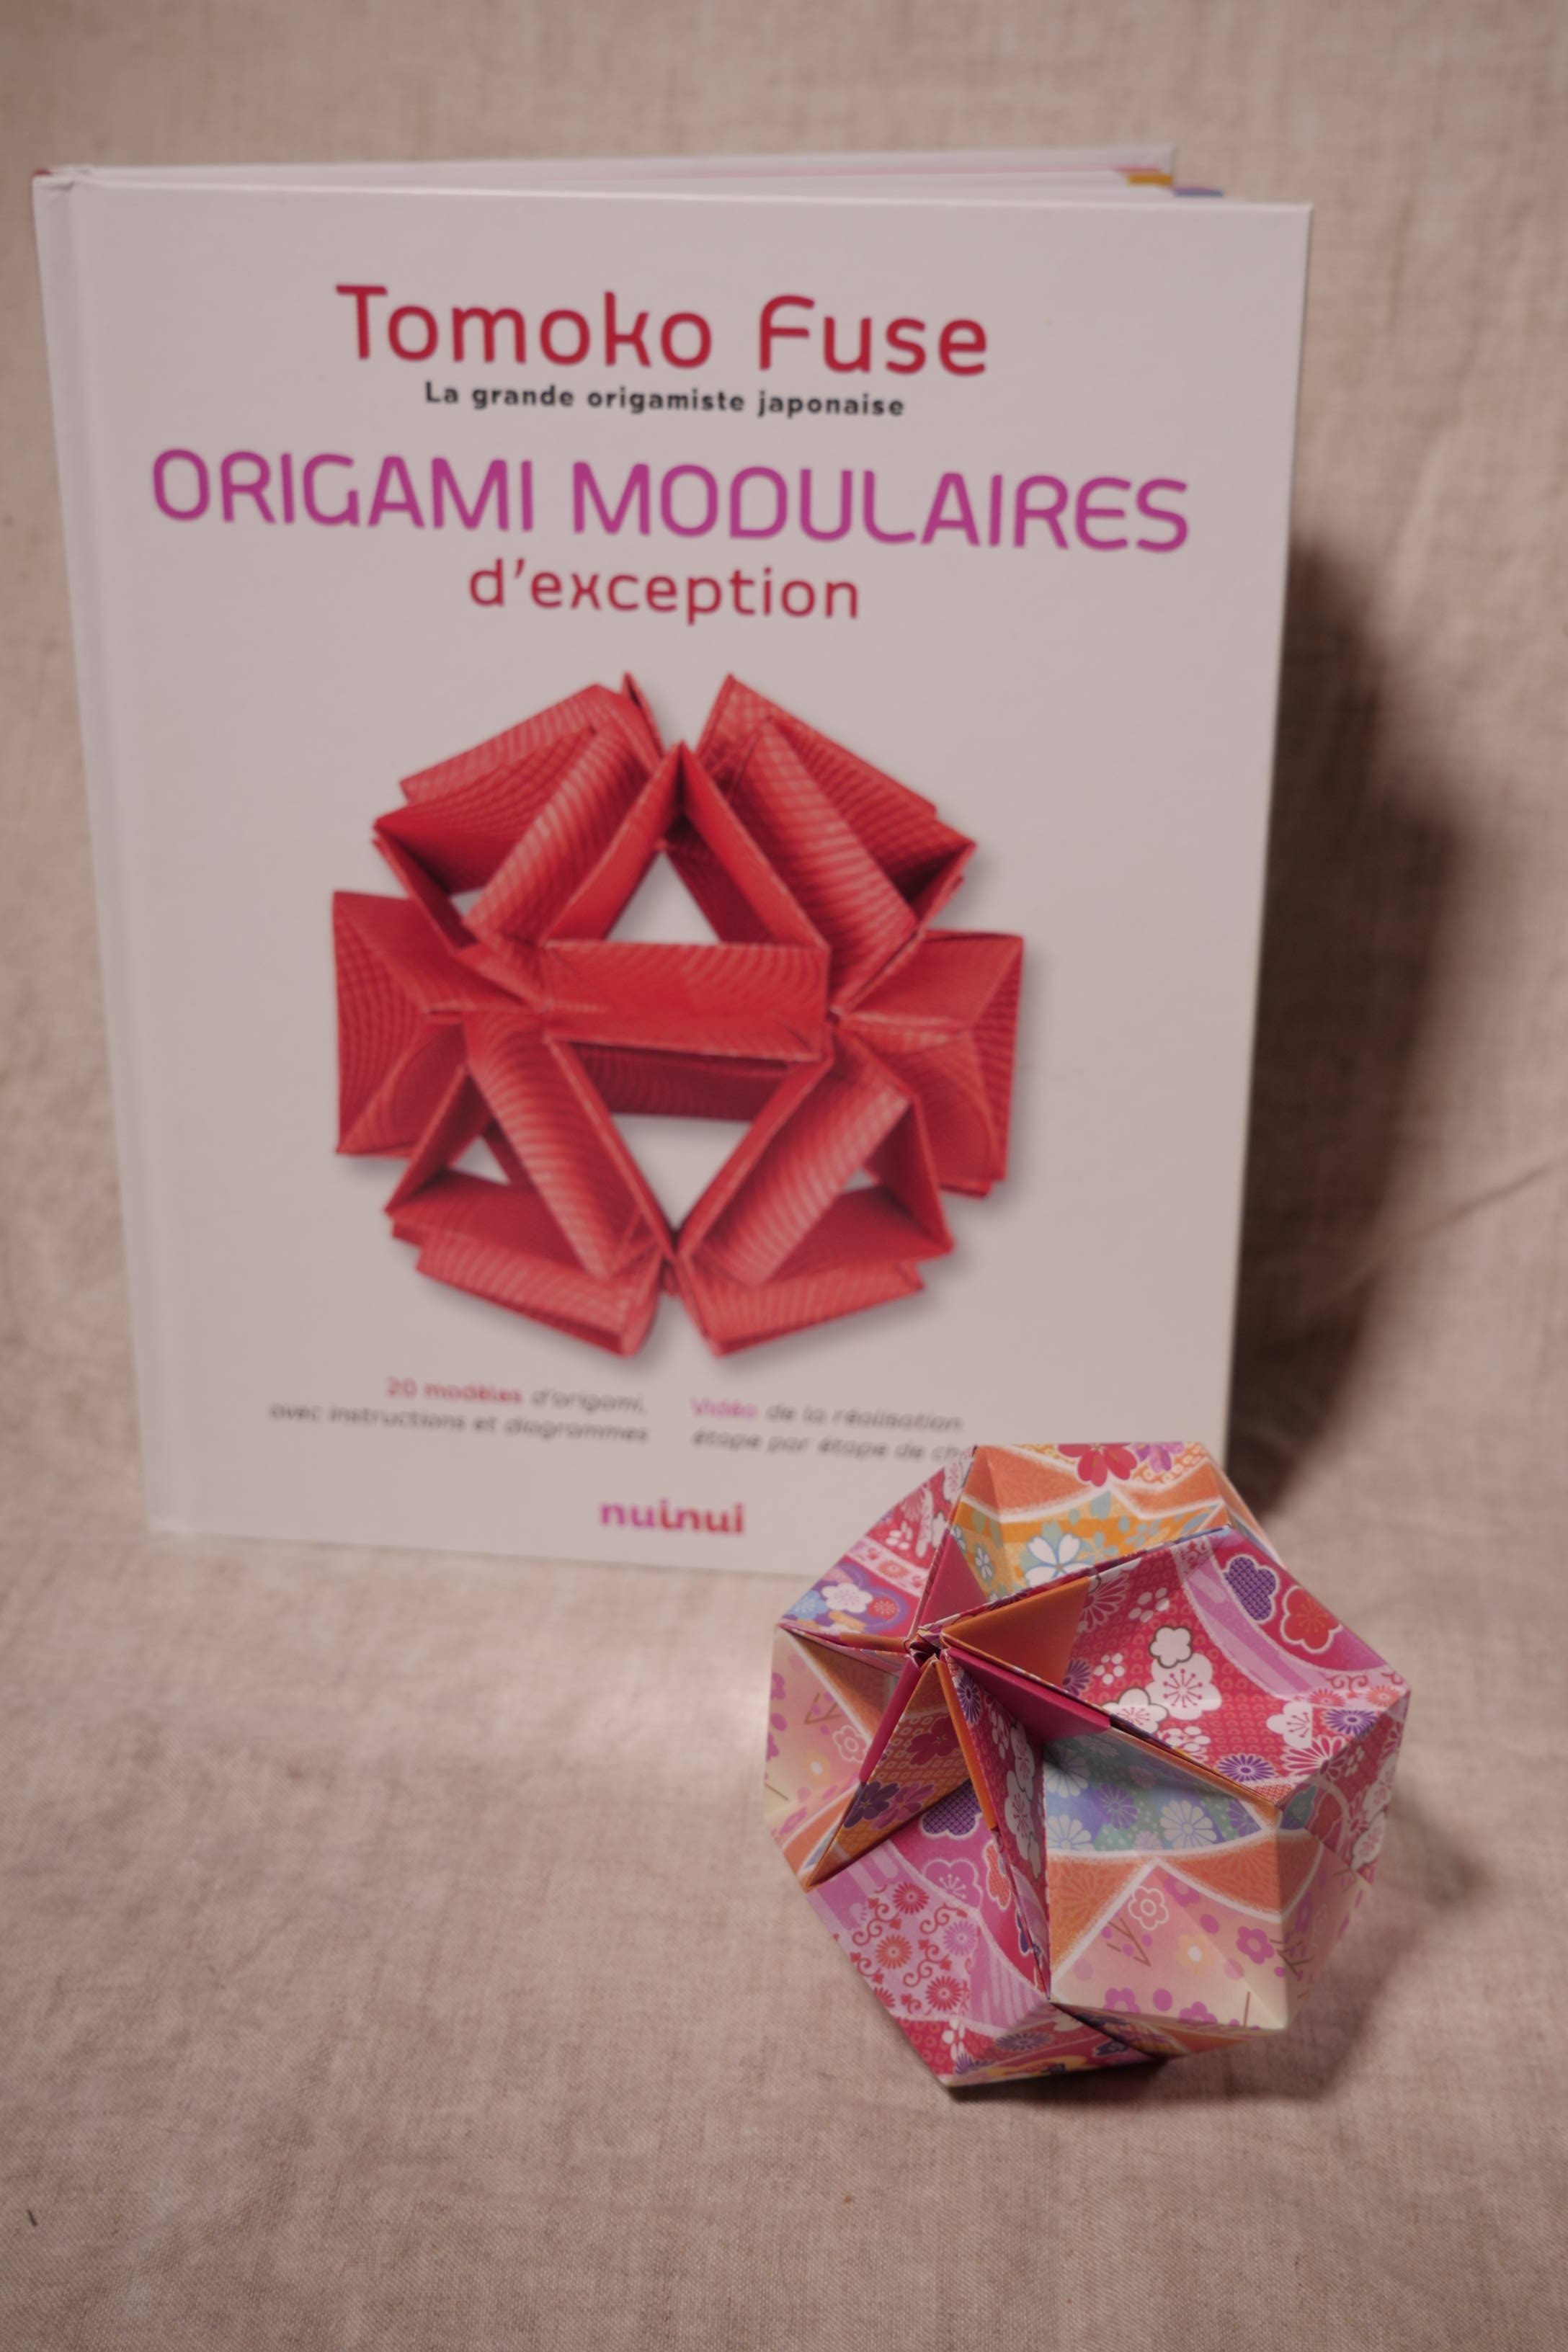 Tomoko Fus Multi Pli Origami Boxes Fuse S It Is Folded From 6 Sheets Of Square 15 Cm Paper You Can Use 7 If Want The Model Says 5 Works Too But I Doubt Double Sided